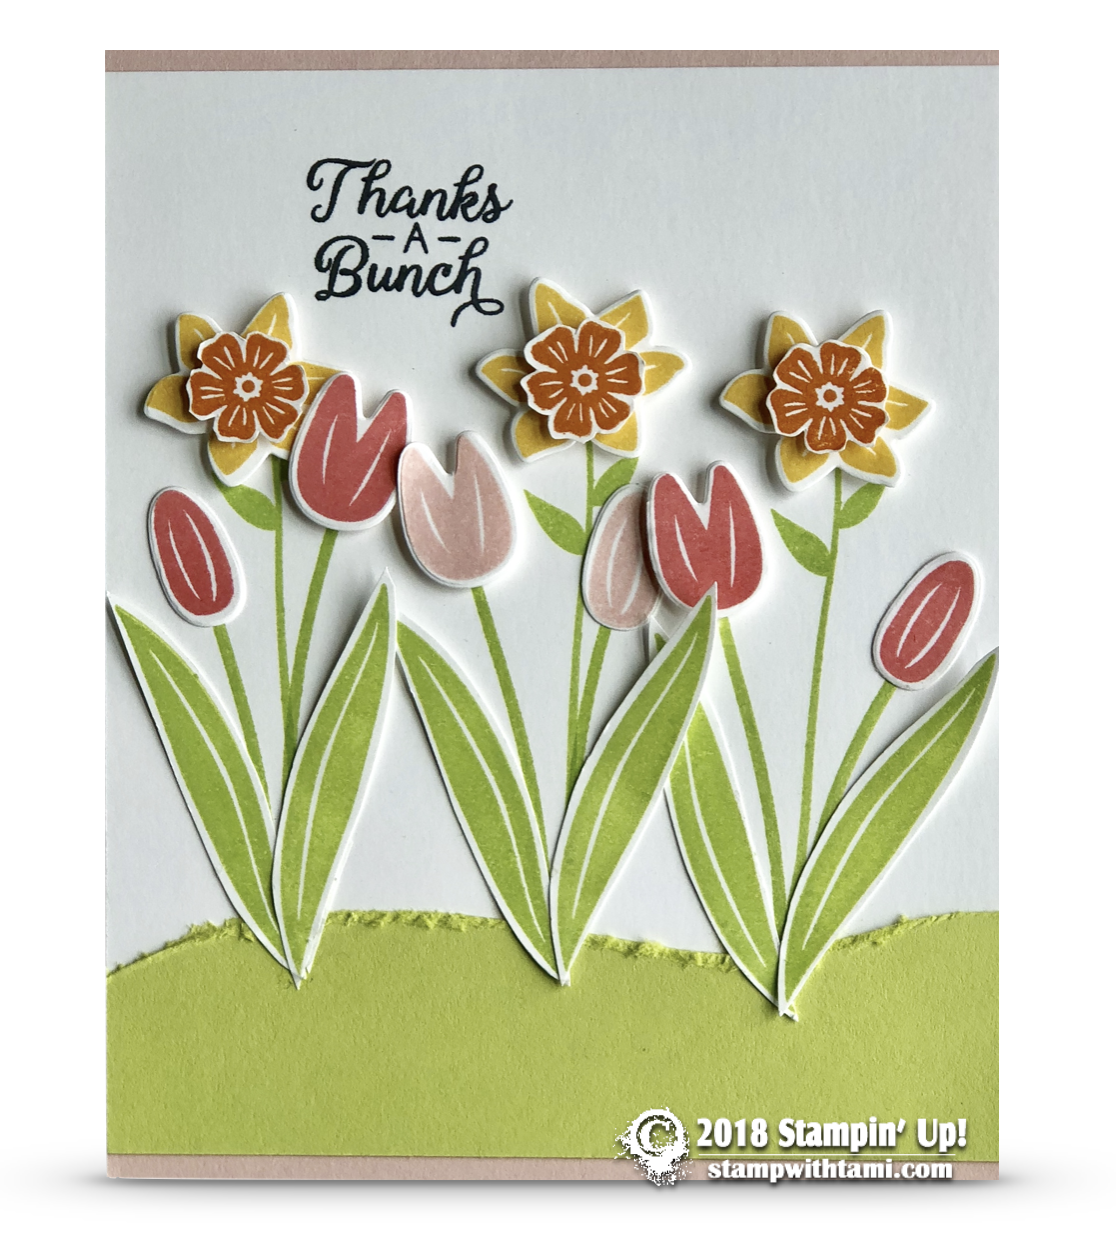 Card Thanks A Bunch From The Beautiful Bouquet Stamps Stampin Up Demonstrator Tami White Stamping Crafting Card Making